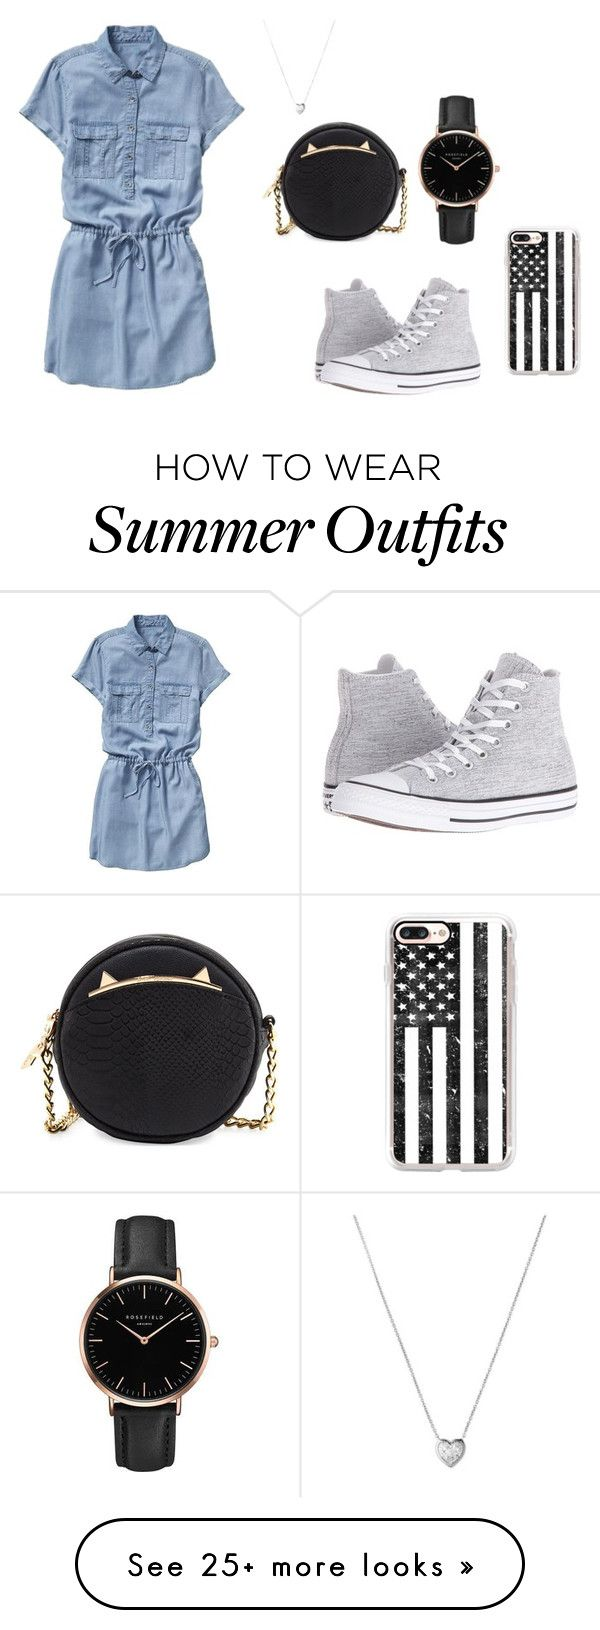 """""""Summer outfit"""" by chloe-denise-cheng-barraza on Polyvore featuring Gap, Converse, Betsey Johnson, Casetify, Links of London and Topshop"""